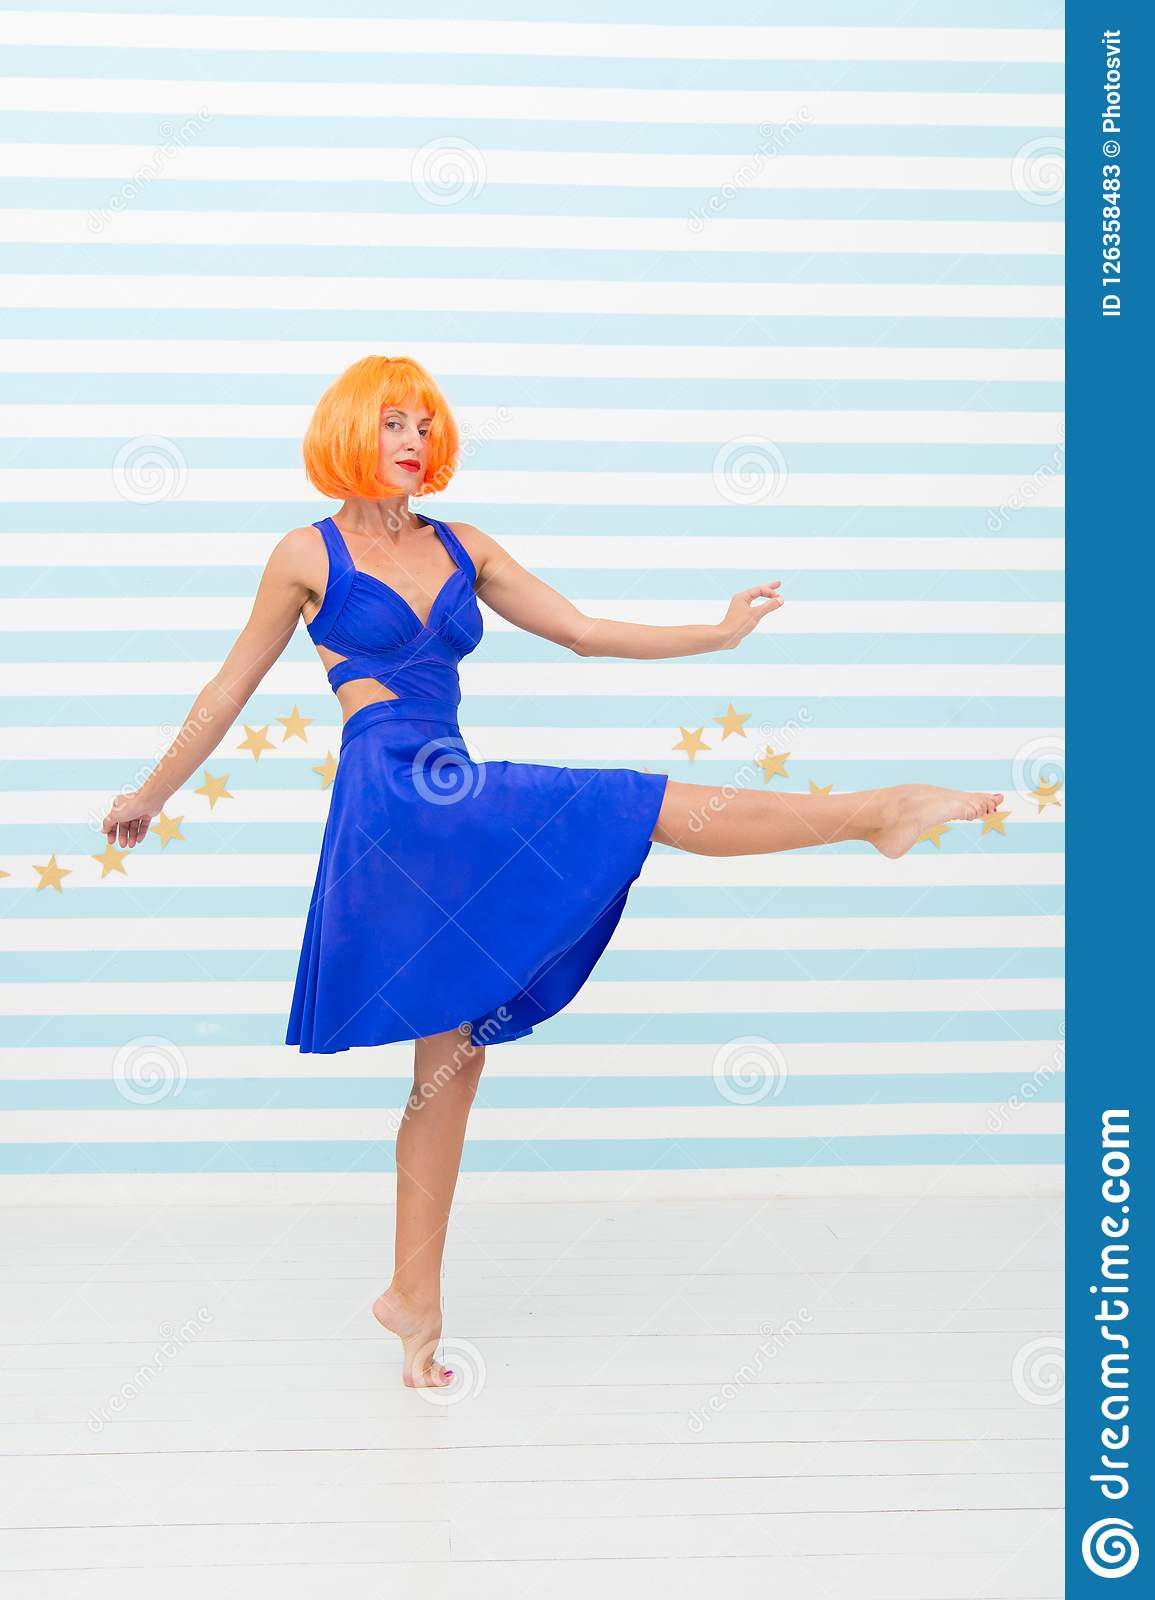 Carefree girl with crazy look makes step. so much fun. crazy girl with orange hair dancing barefoot. totally carefree